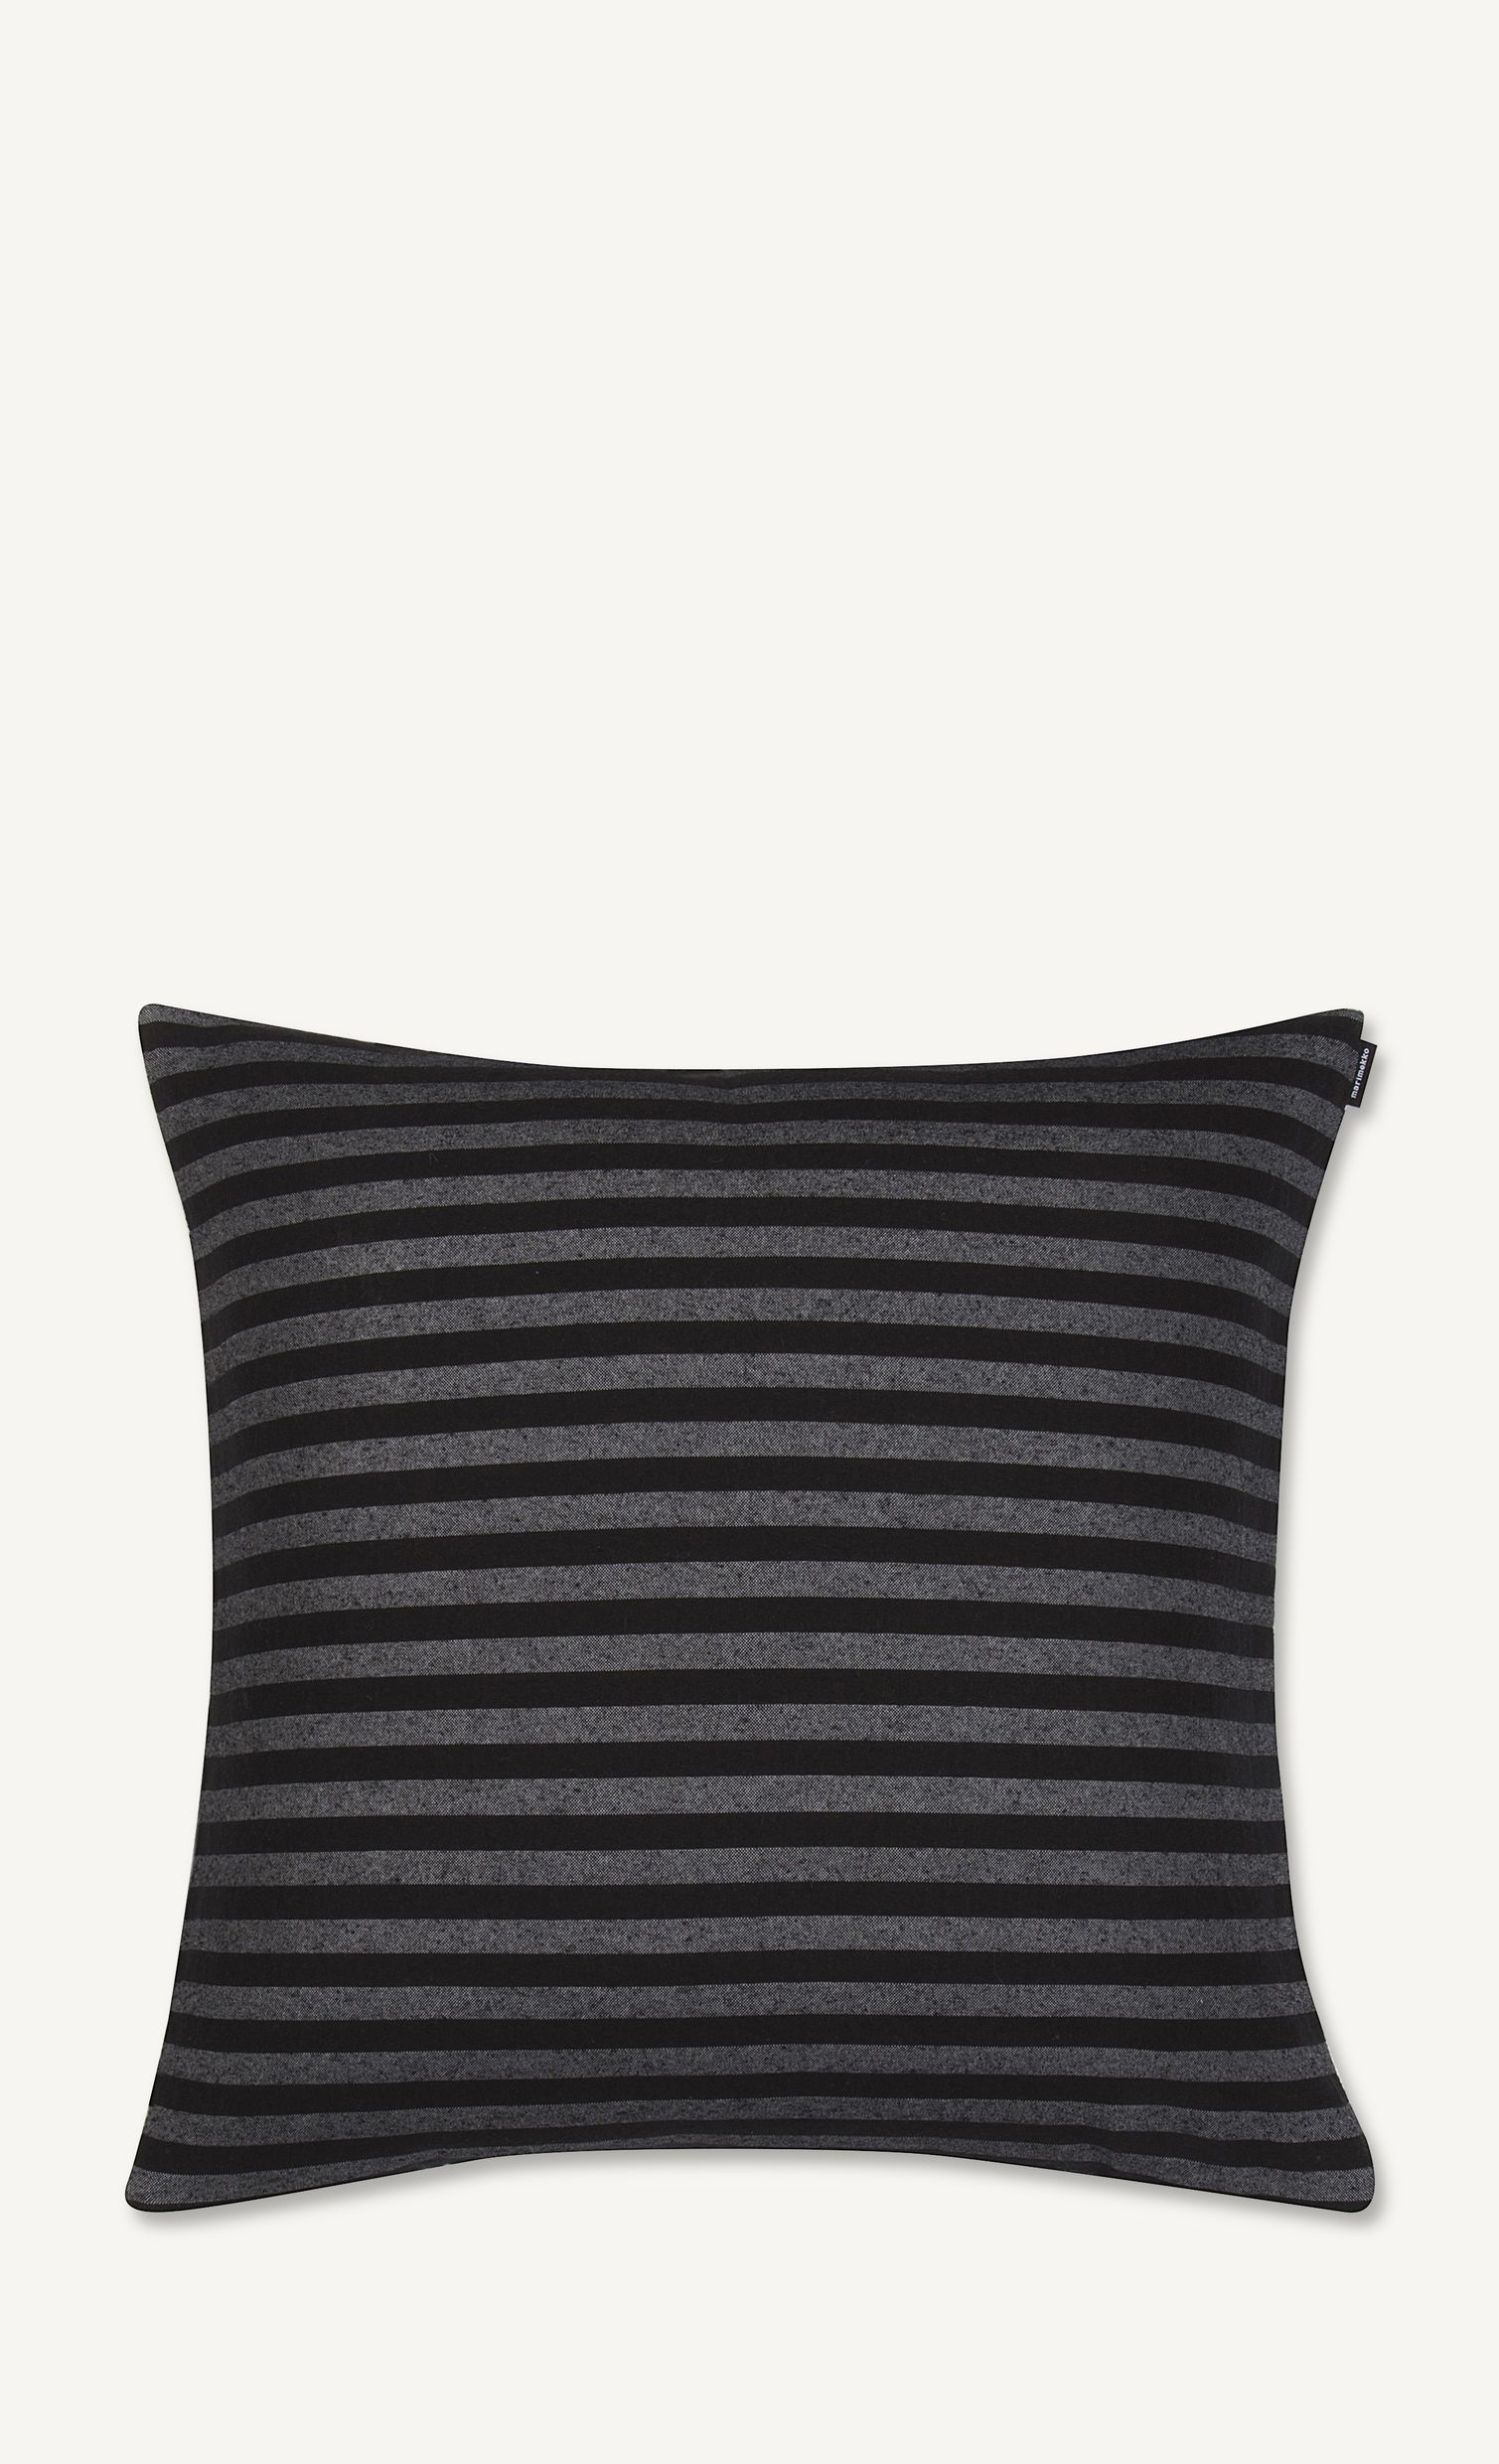 Marimekko, Tasaraita Cushion Cover, Black/Grey- Placewares